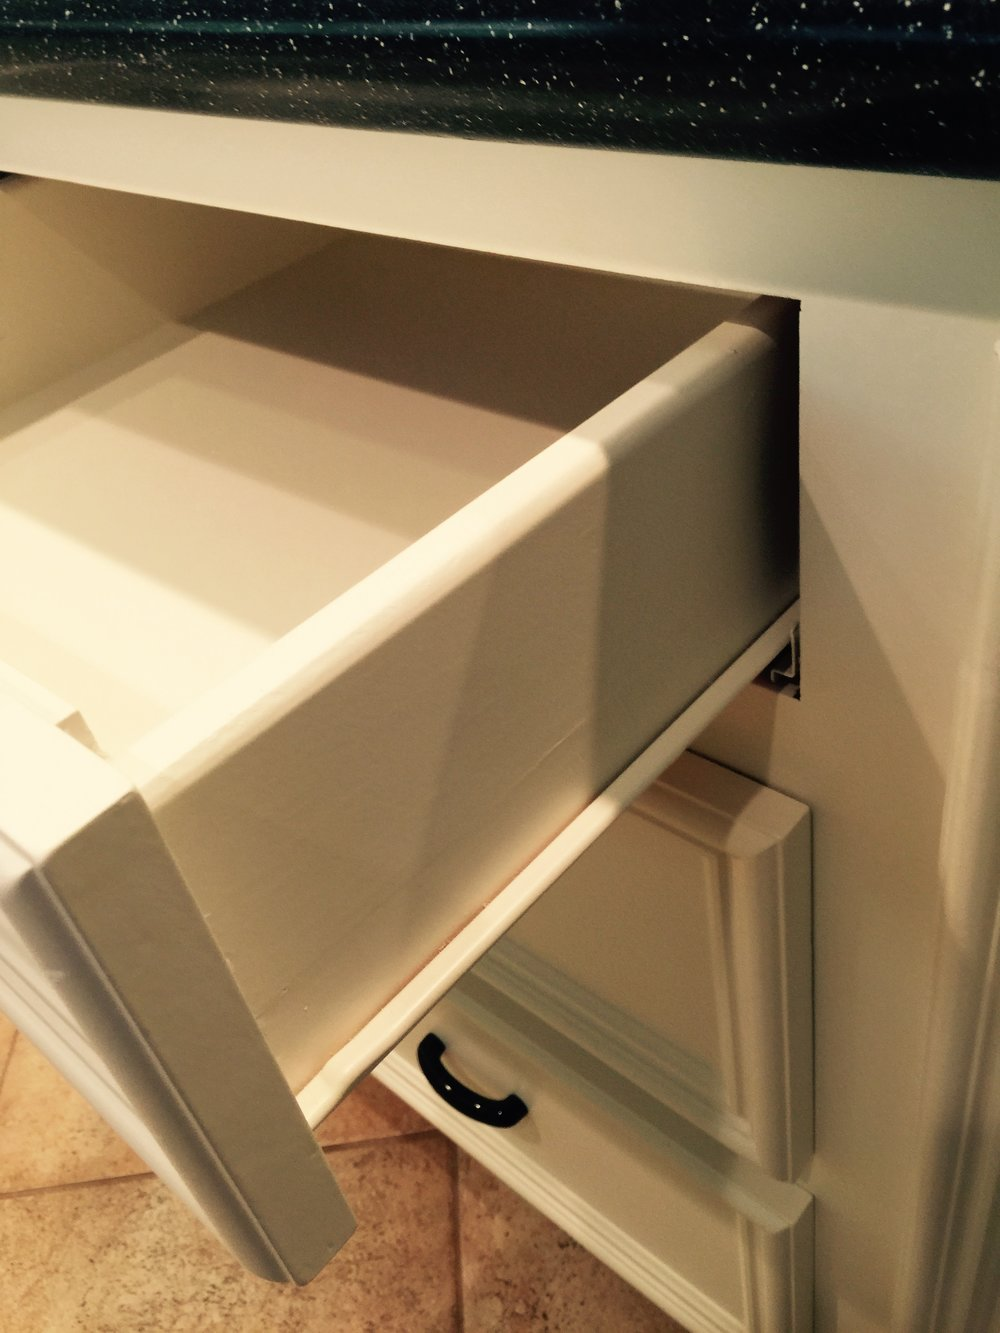 Standard drawer glides found in many builder homes.